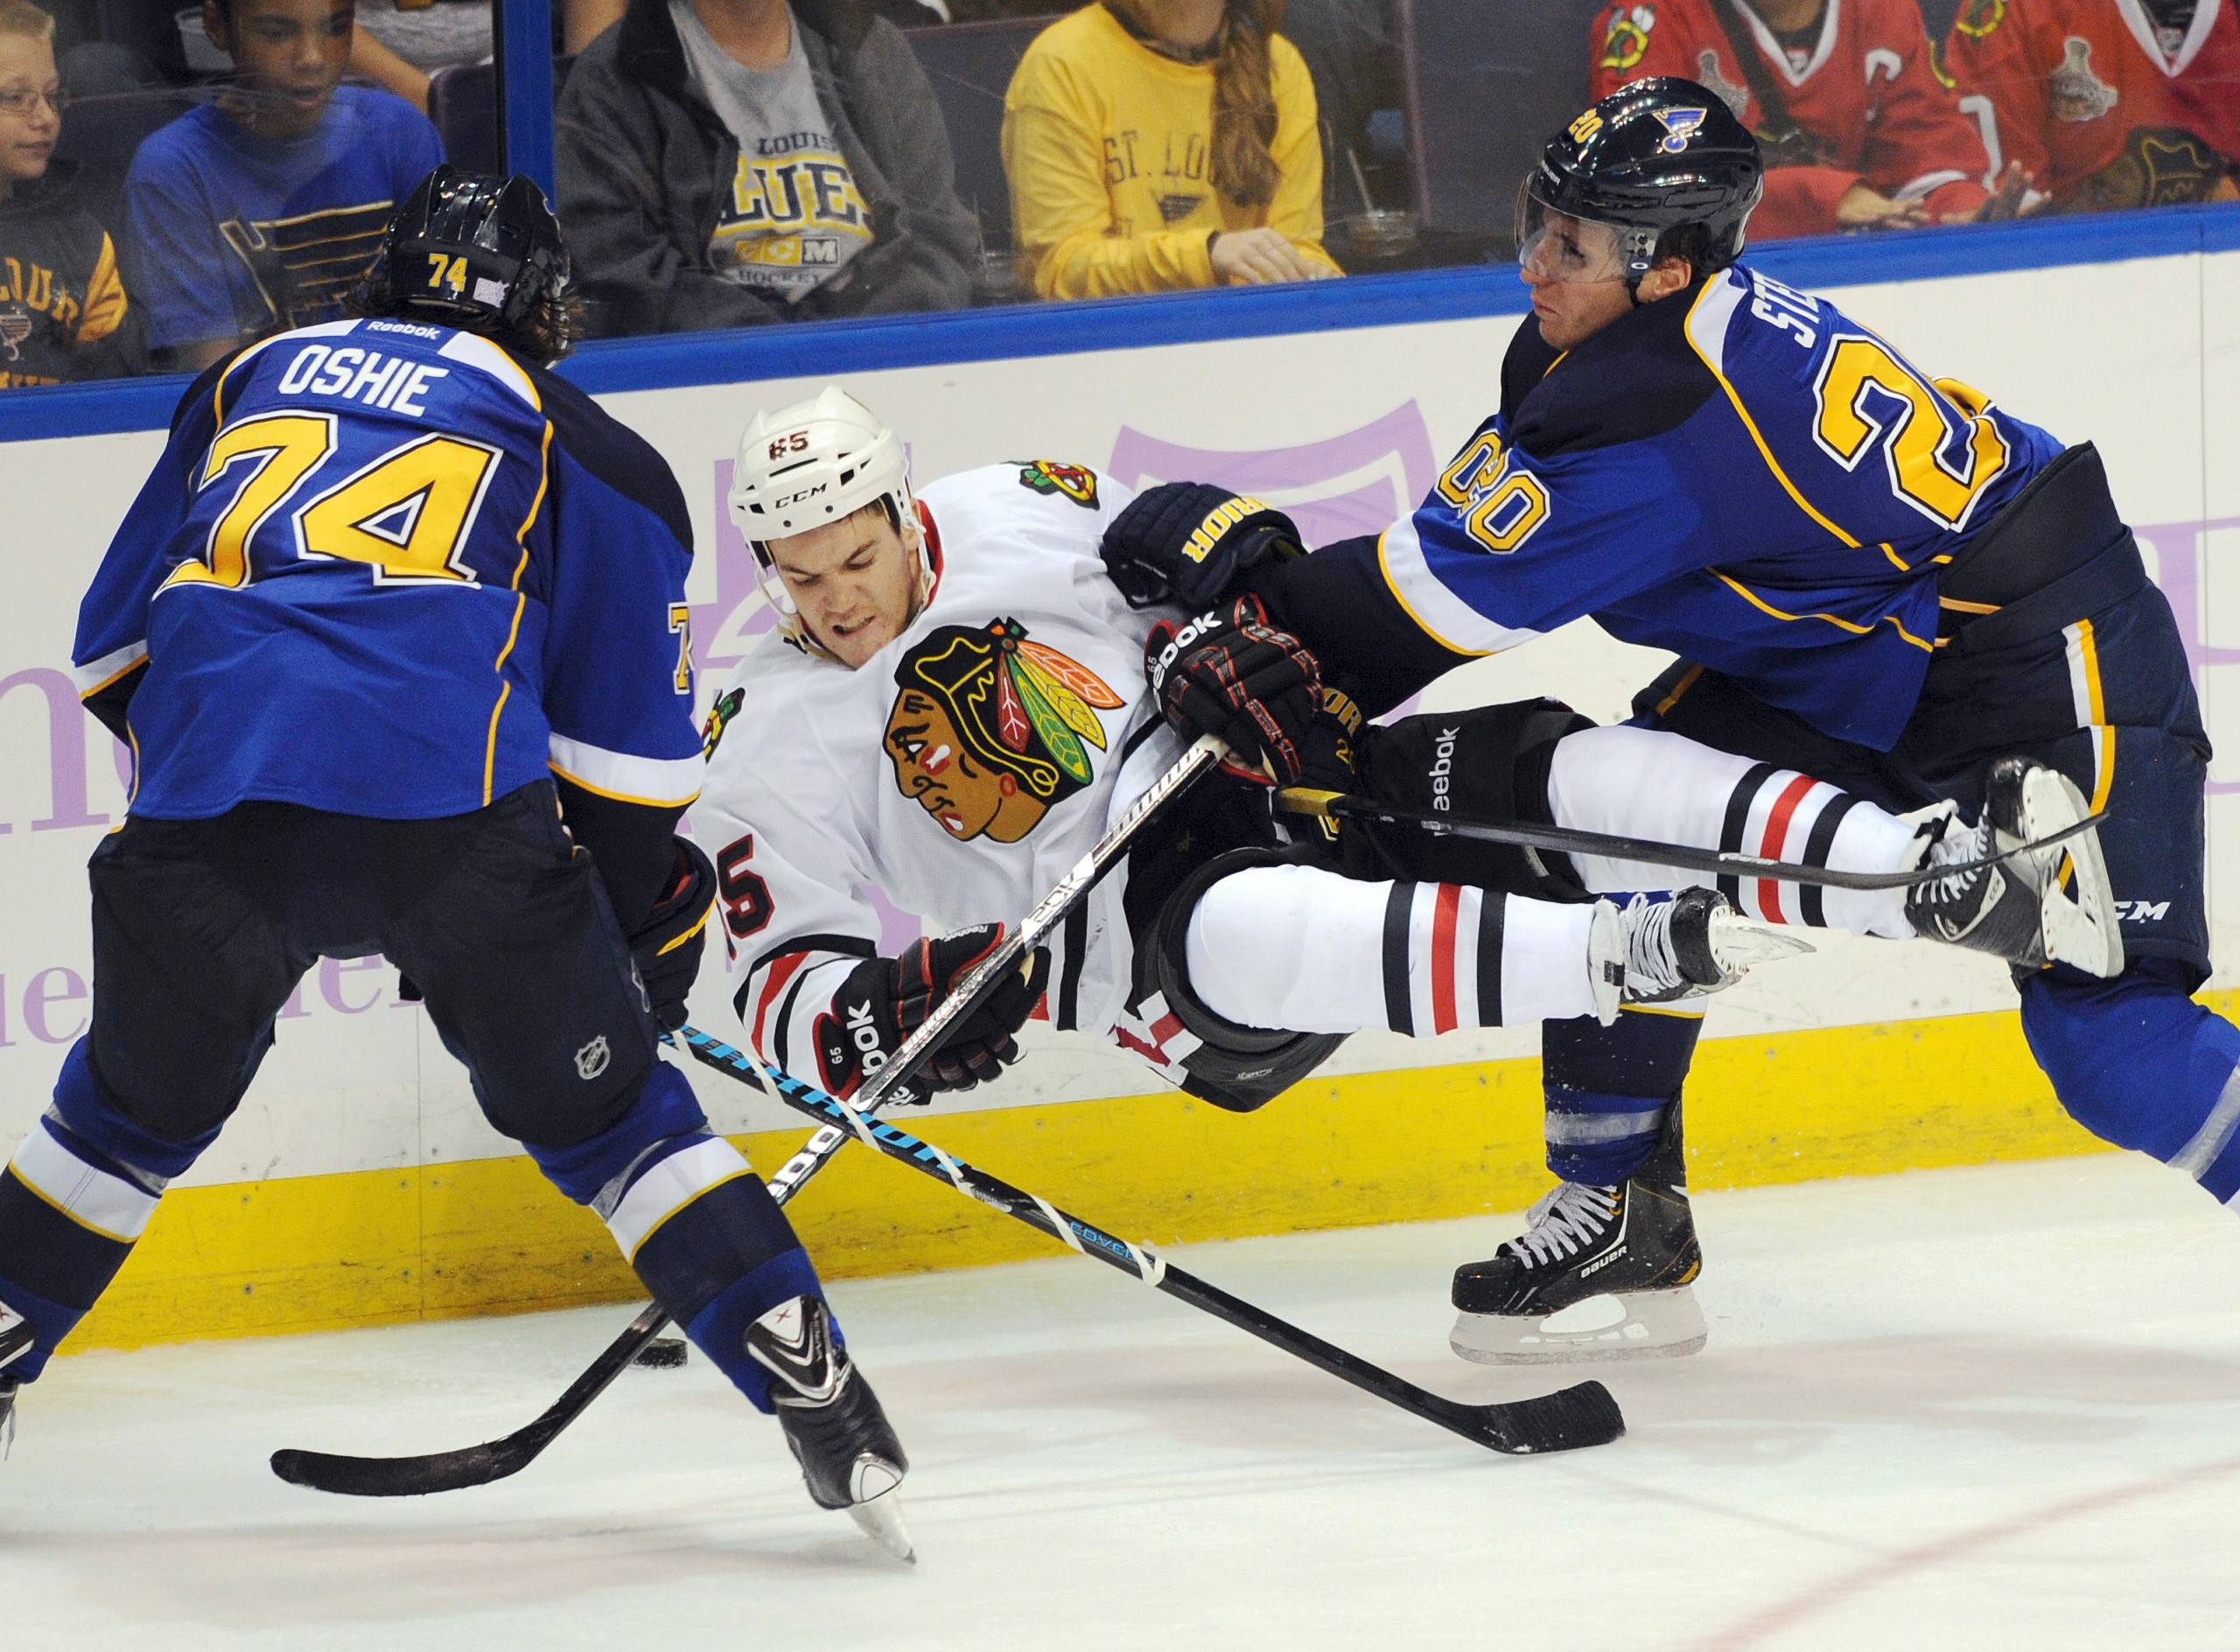 When the St. Louis Blues and the Chicago Blackhawks get together on the ice, it's always a physical game, as Andrew Shaw can attest from their Oct. 9, 2013, game in St. Louis.